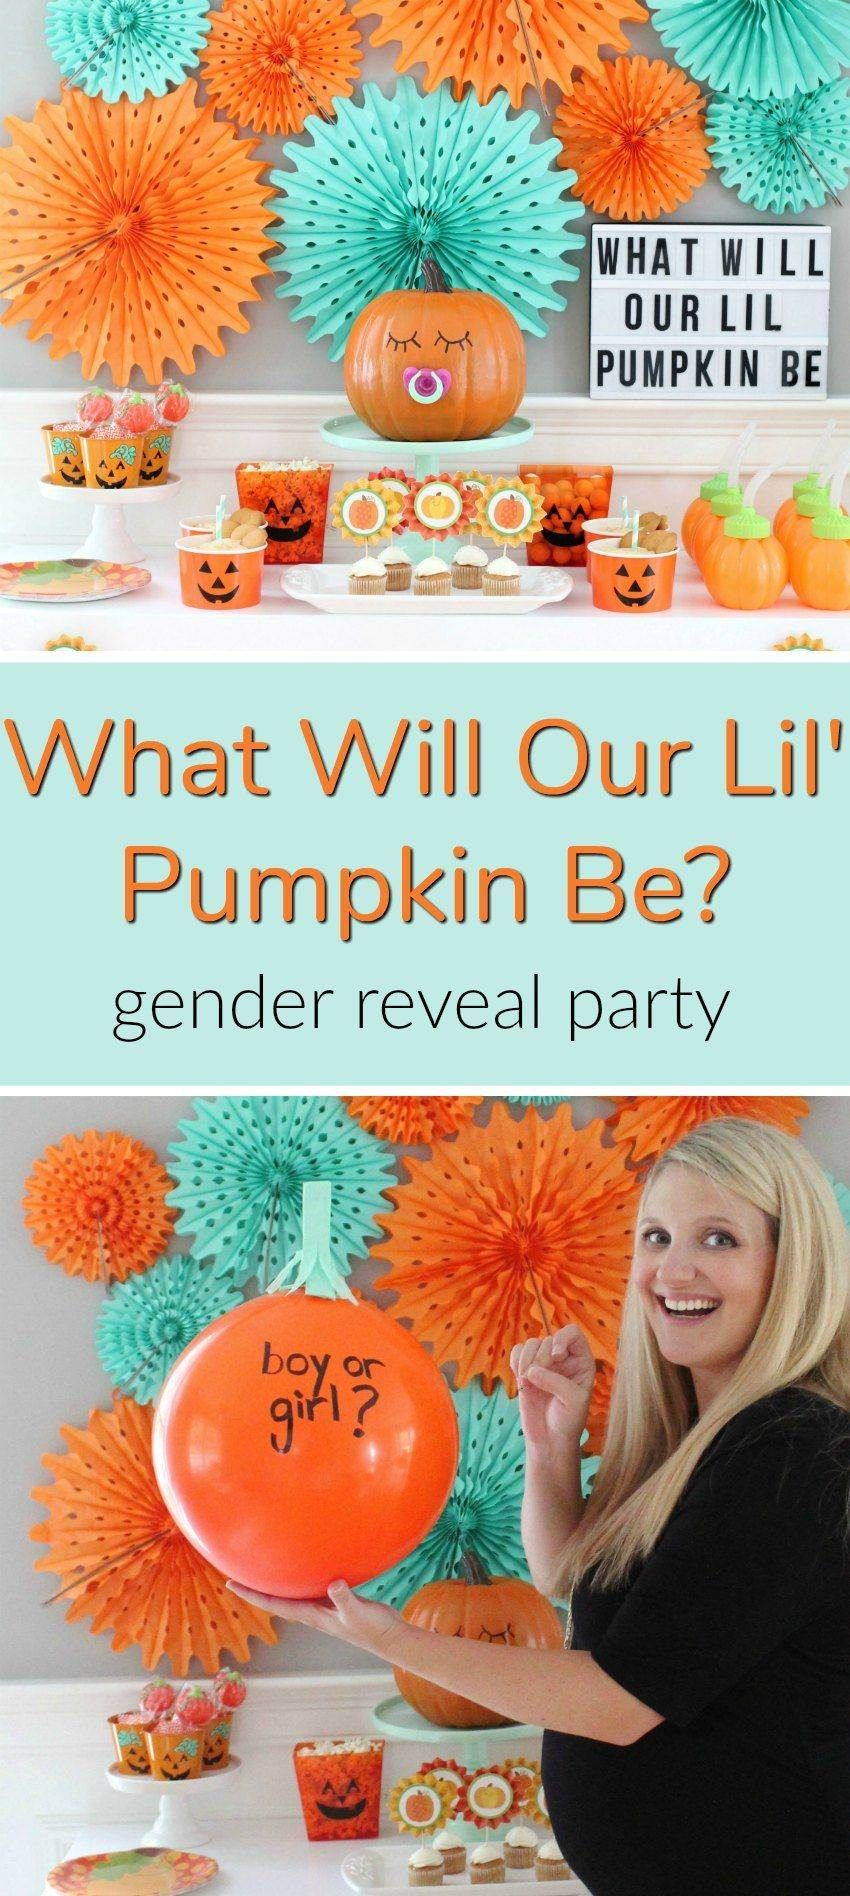 30 Baby Shower Ideas To Jazz Up Your Decor And Food Halloween Gender Reveal Fall Gender Reveal Party Gender Reveal Party